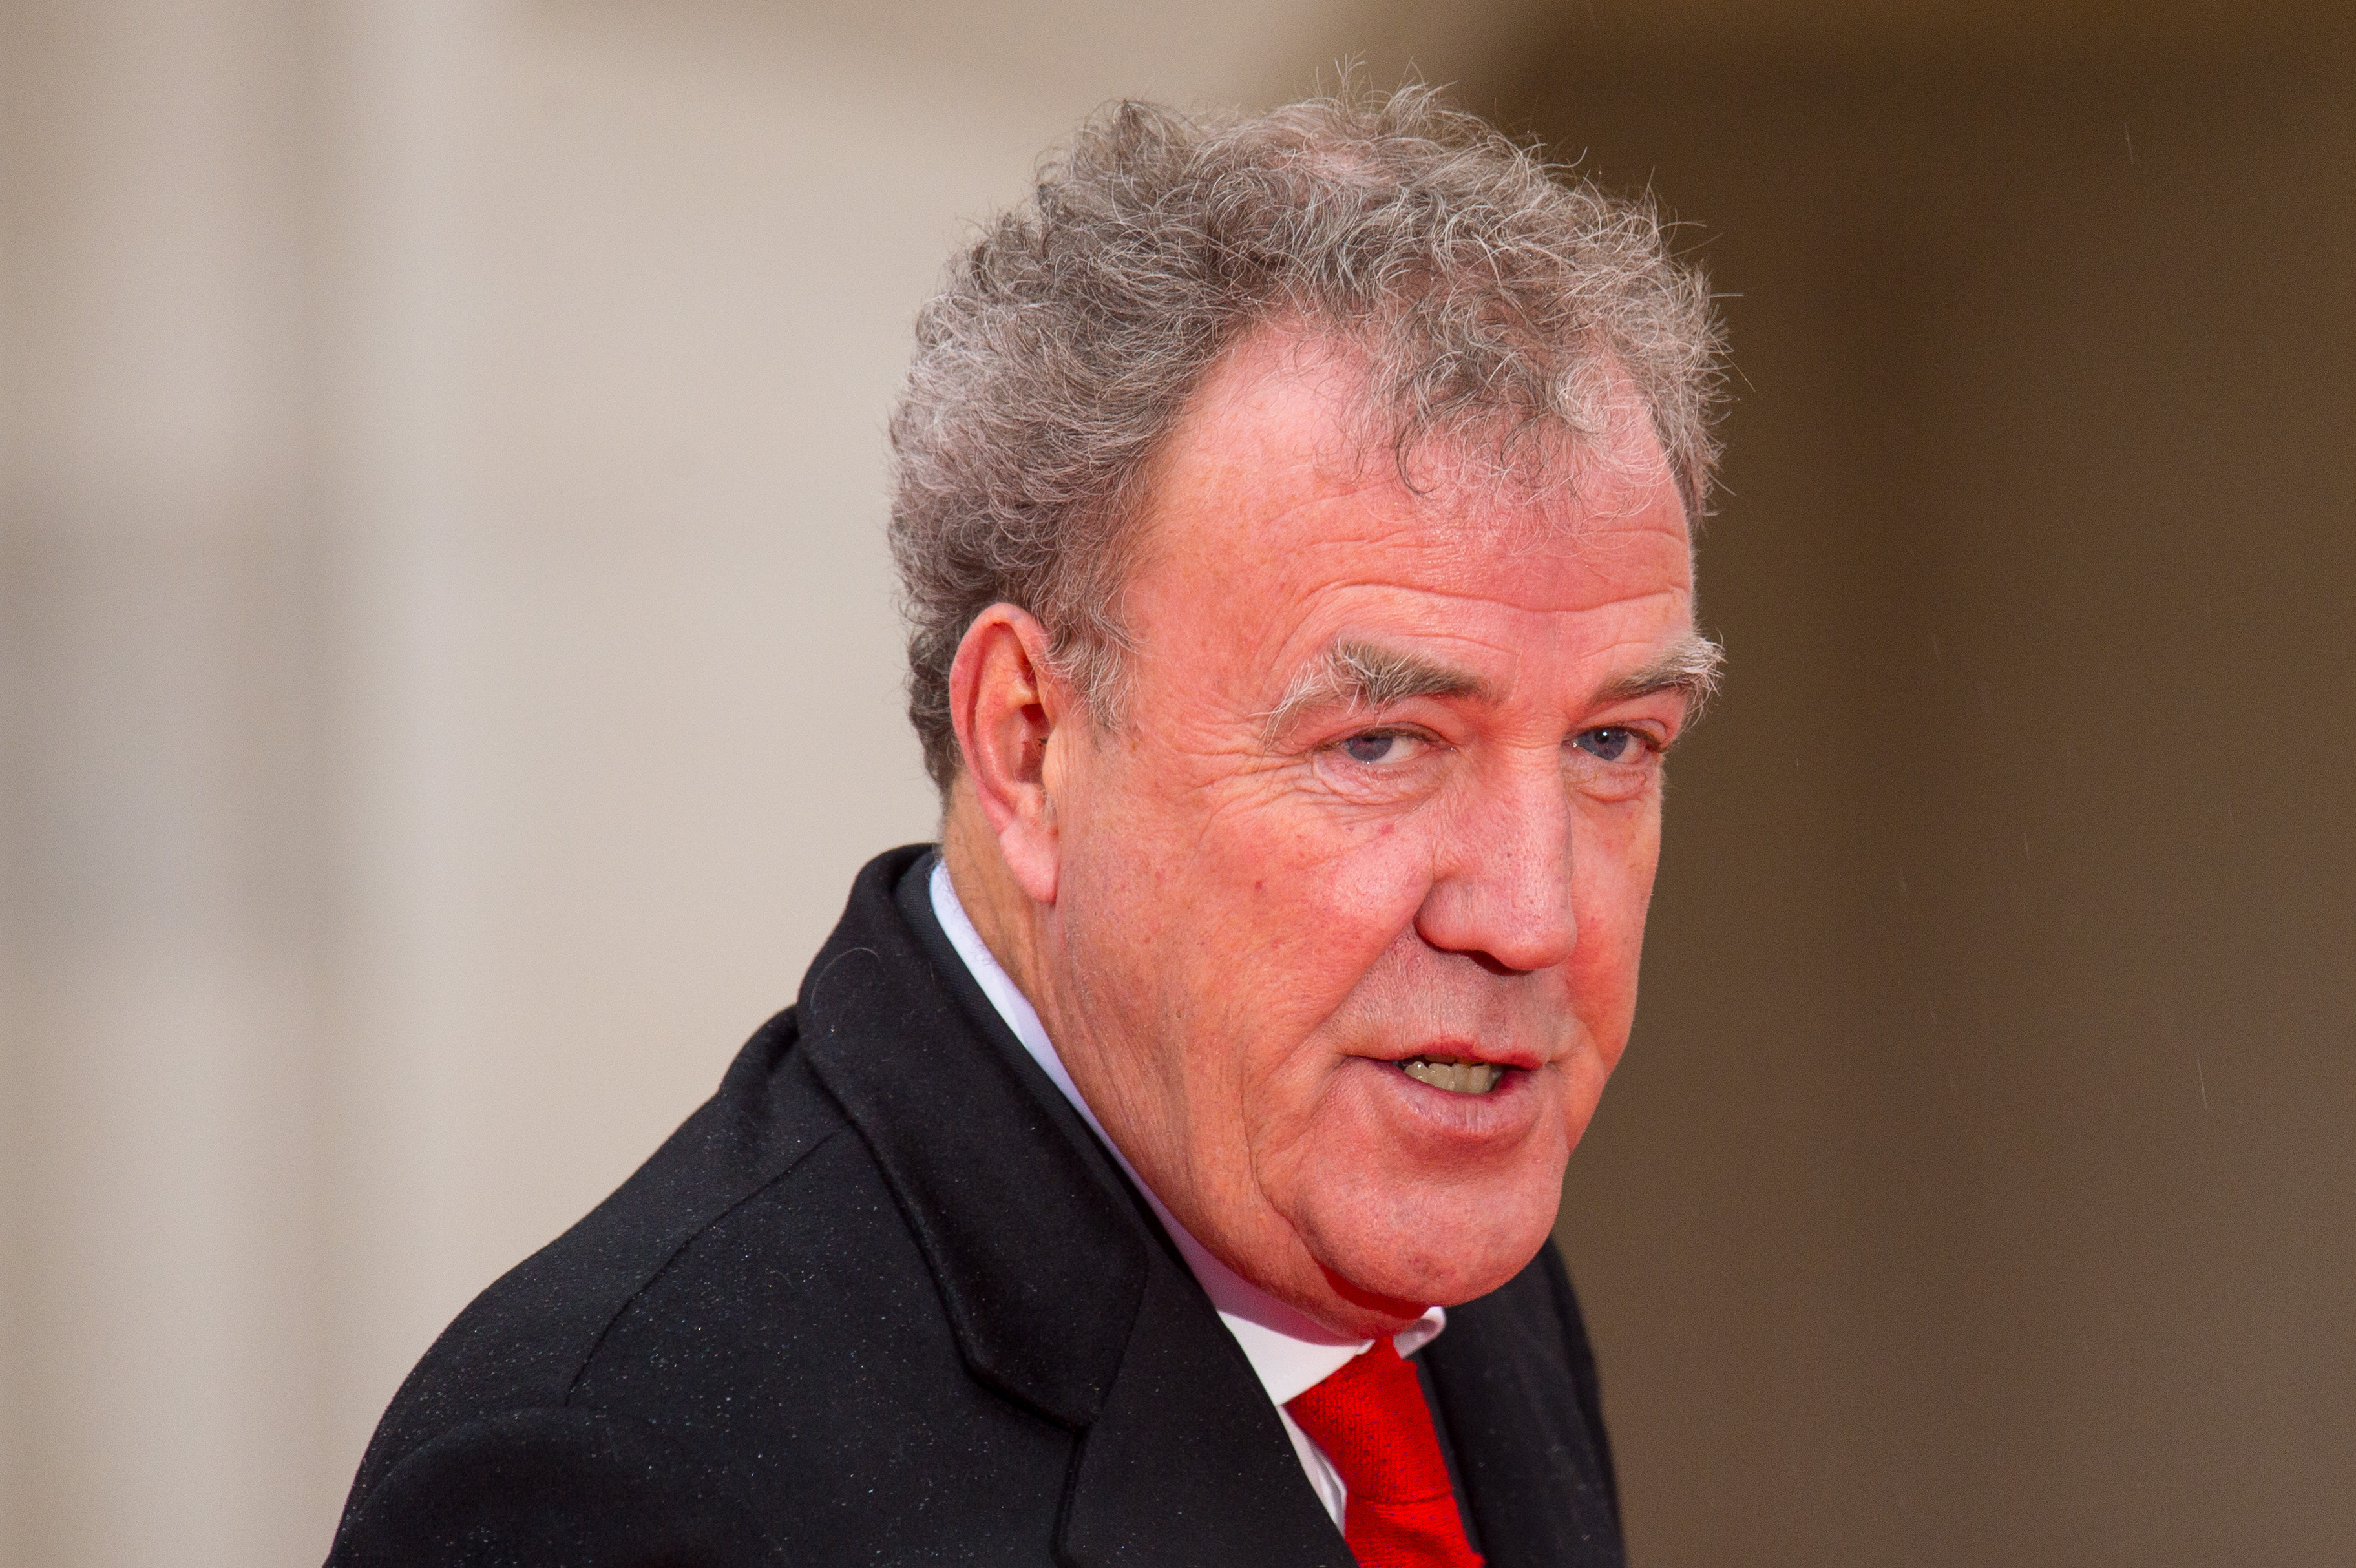 Jeremy Clarkson arriving at the Sun Military Awards, in London on Jan. 22., 2016.